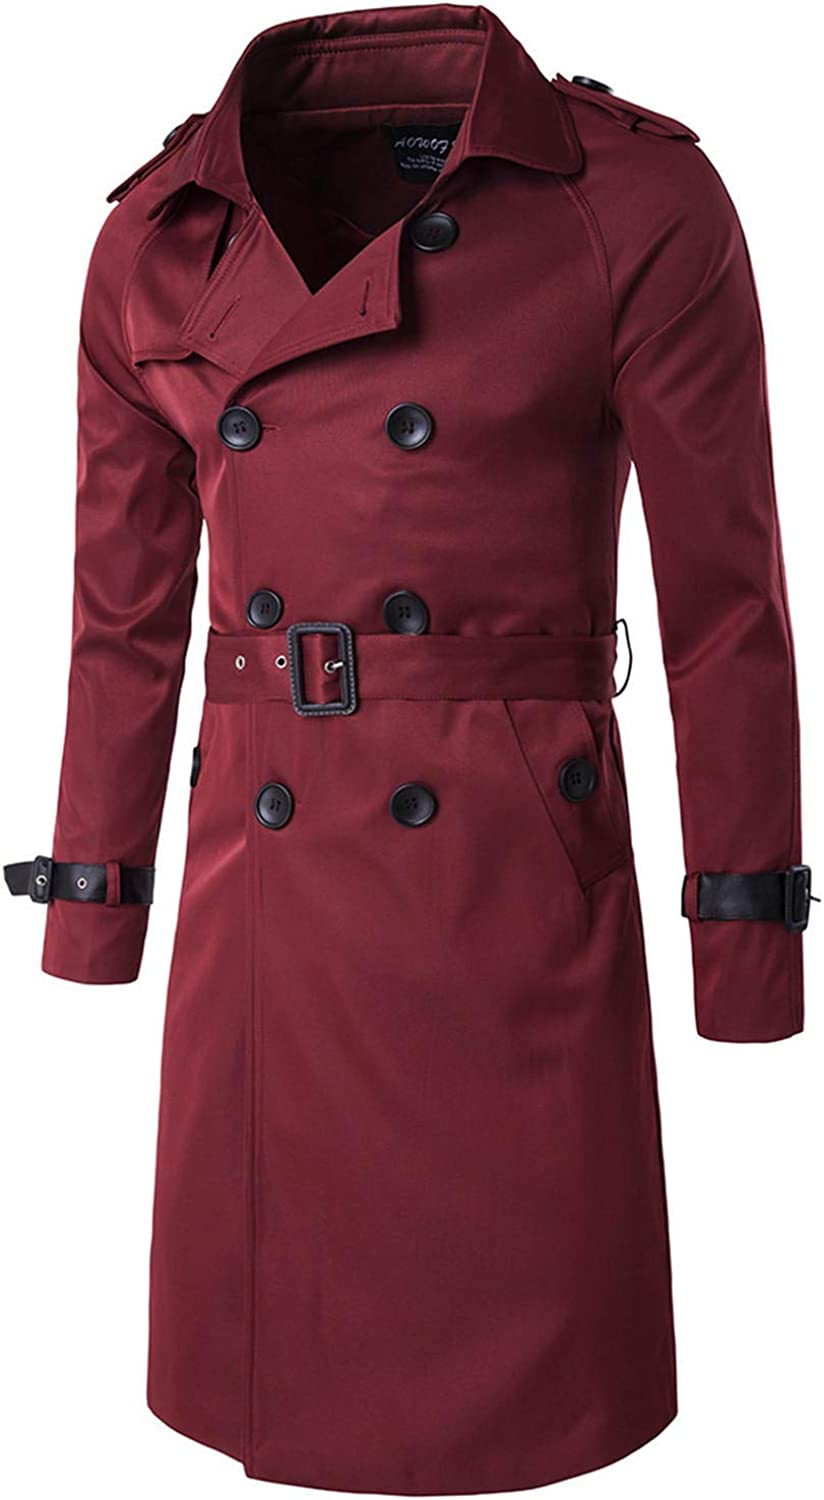 Soluo Mens Wool Blend Trench Coat Winter Long Jacket Double Breasted Overcoat Peacoat Outwear (Red Wine,Medium)